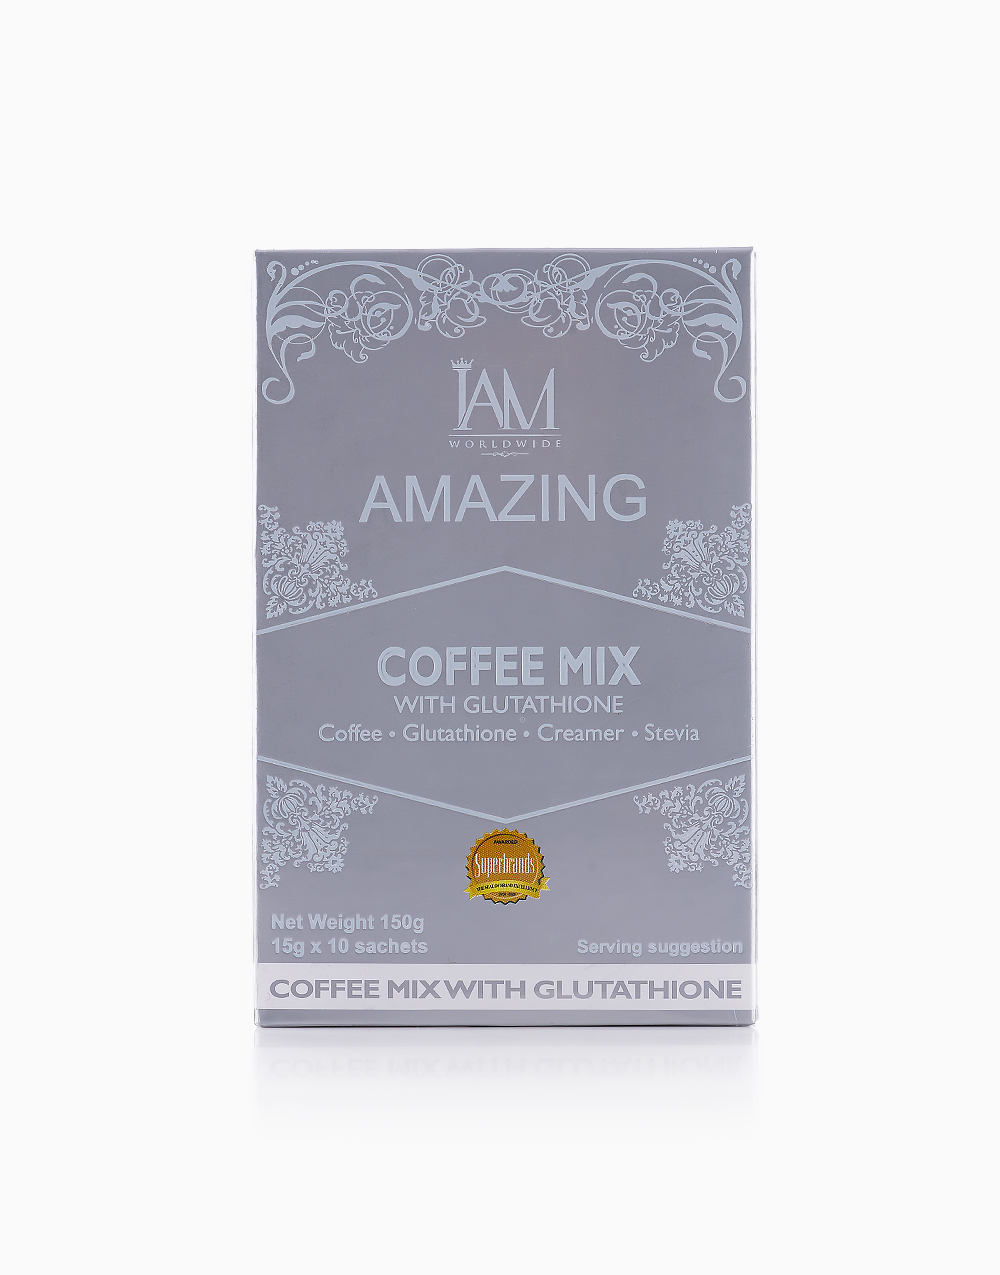 Coffee Mix with Glutathione (10 Sachets) by iAMWorldwide